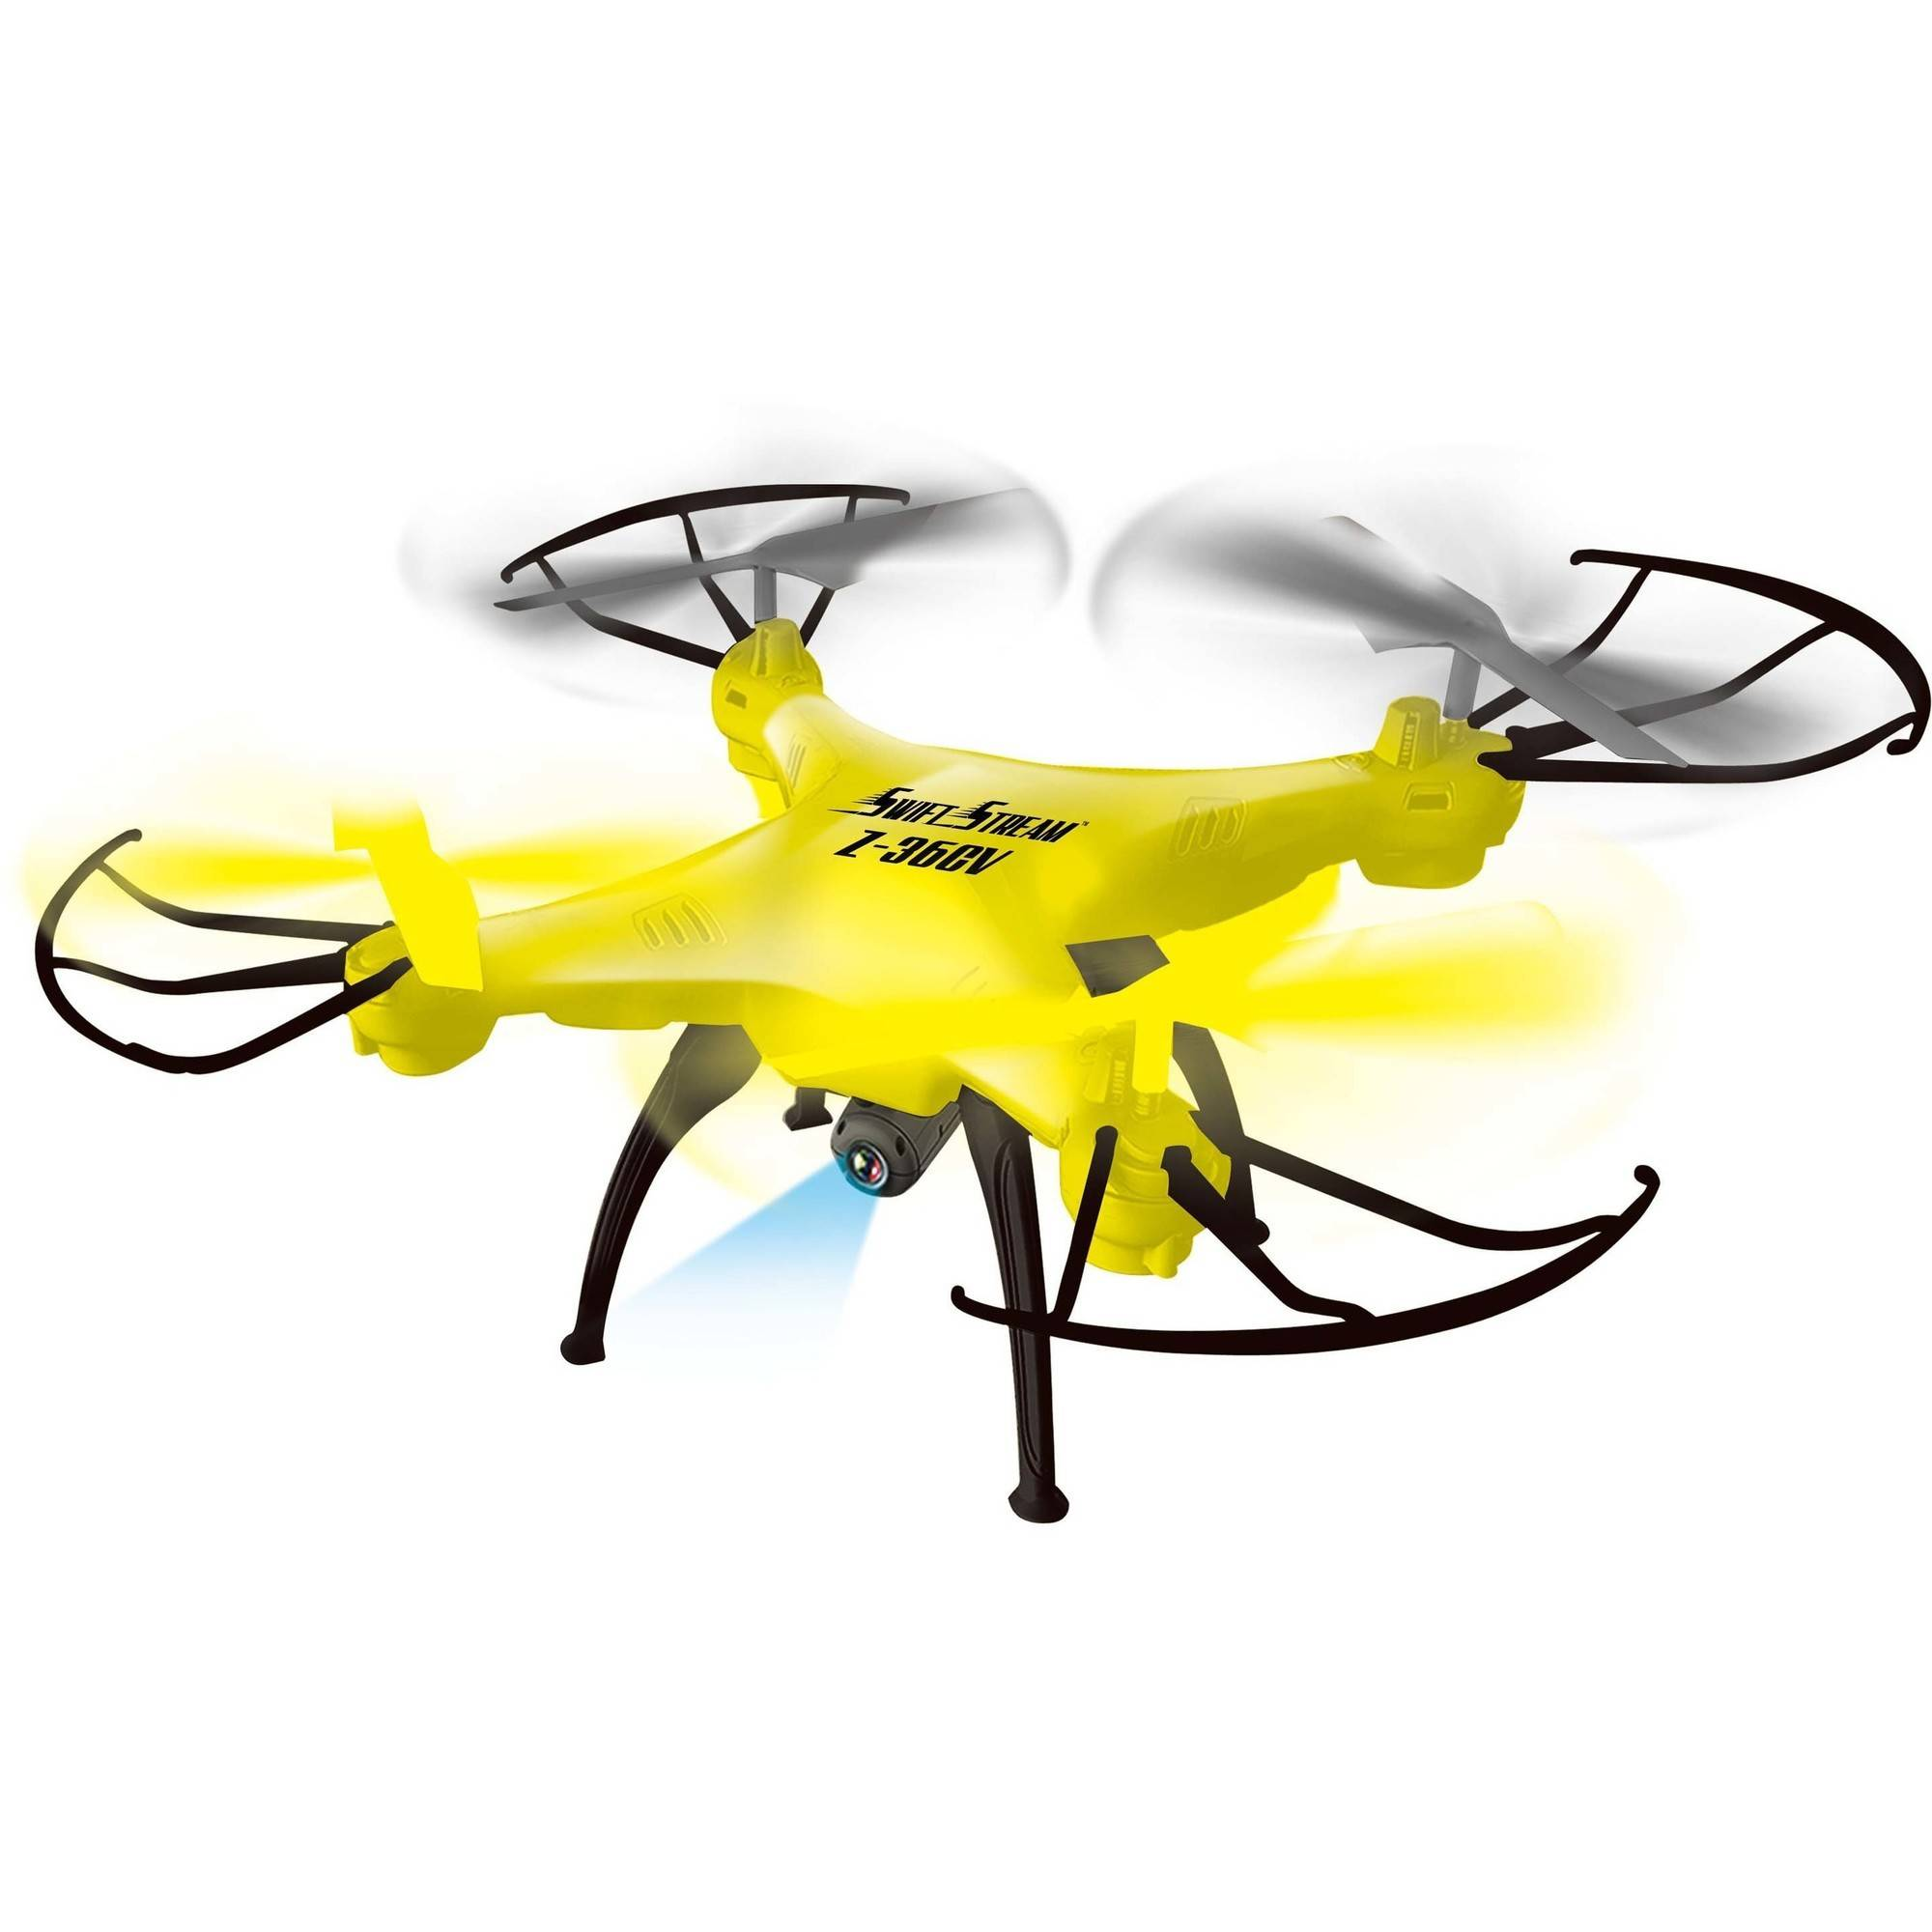 Swift Stream Z-36CV 2.4GHz 5-Channel RC Drone with Camera and 2GB Memory Card, Yellow